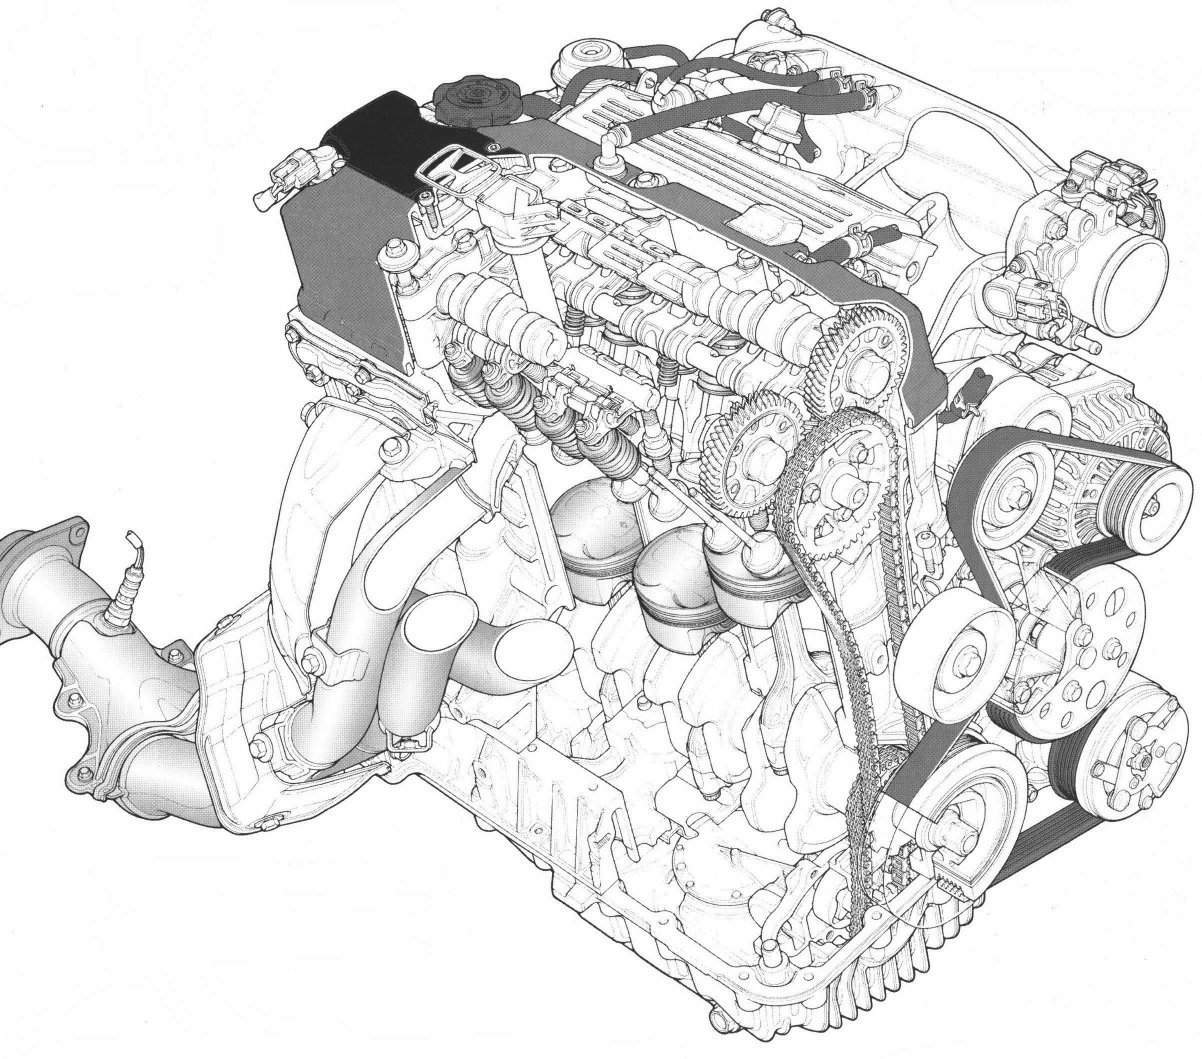 Tom S Honda S Blog Some Cool Cutaways